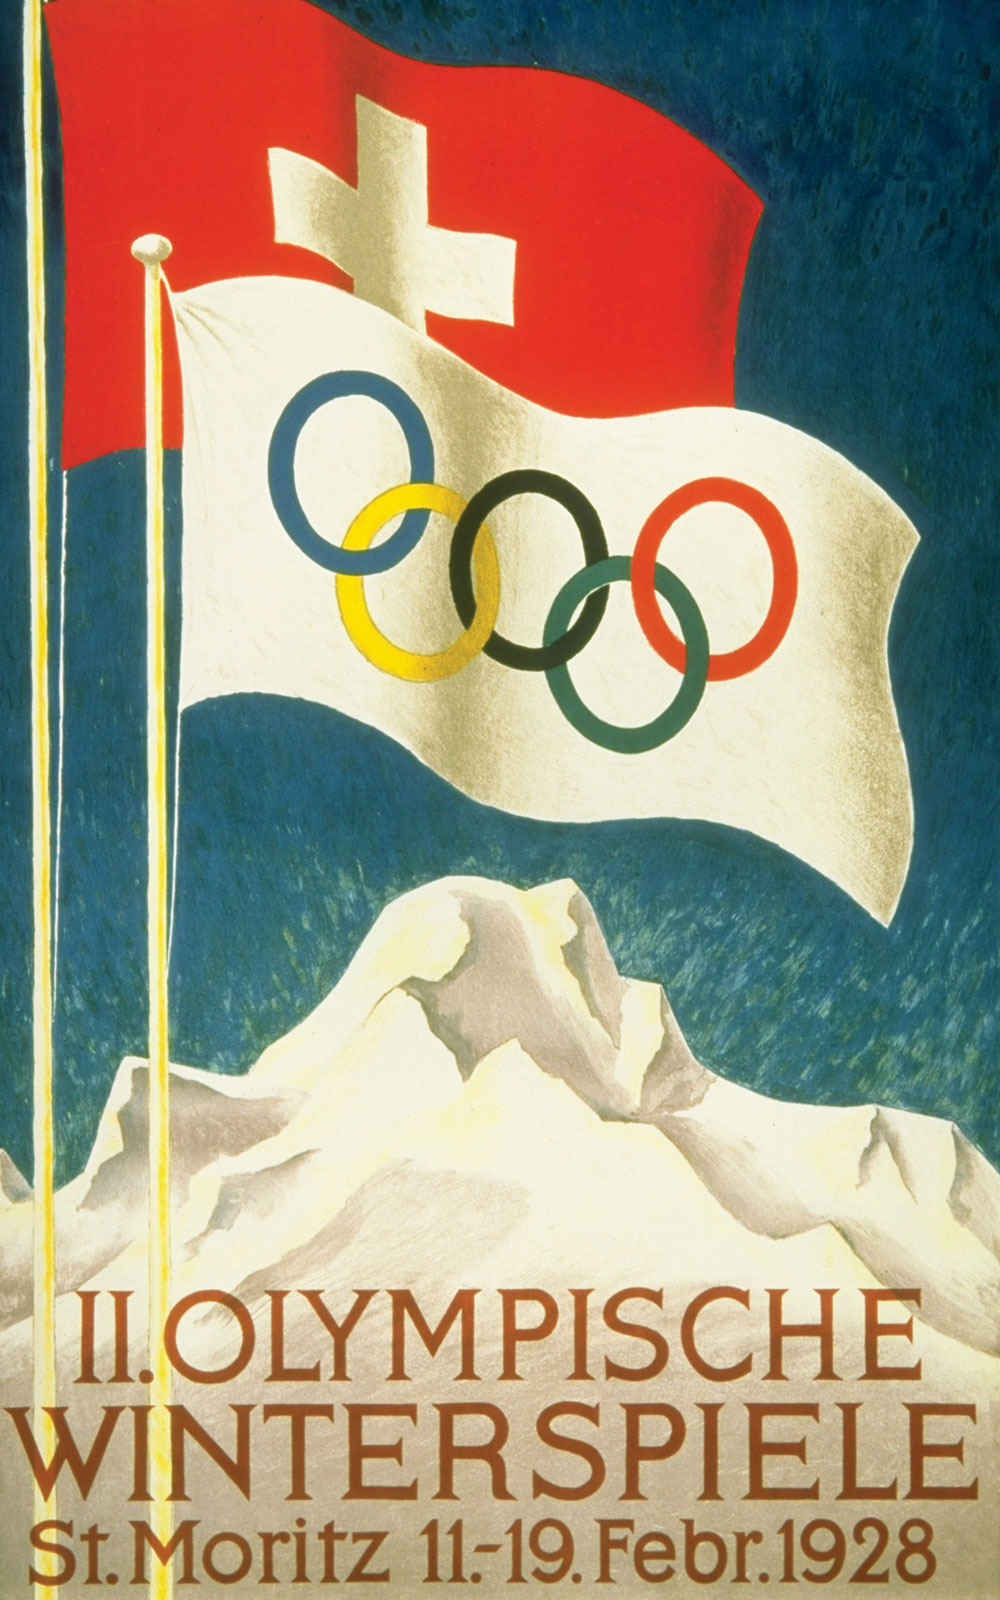 Winter Olympics Posters Through the Ages: 1928-St.-Moritz-Winter-Olympics-Logo.jpg